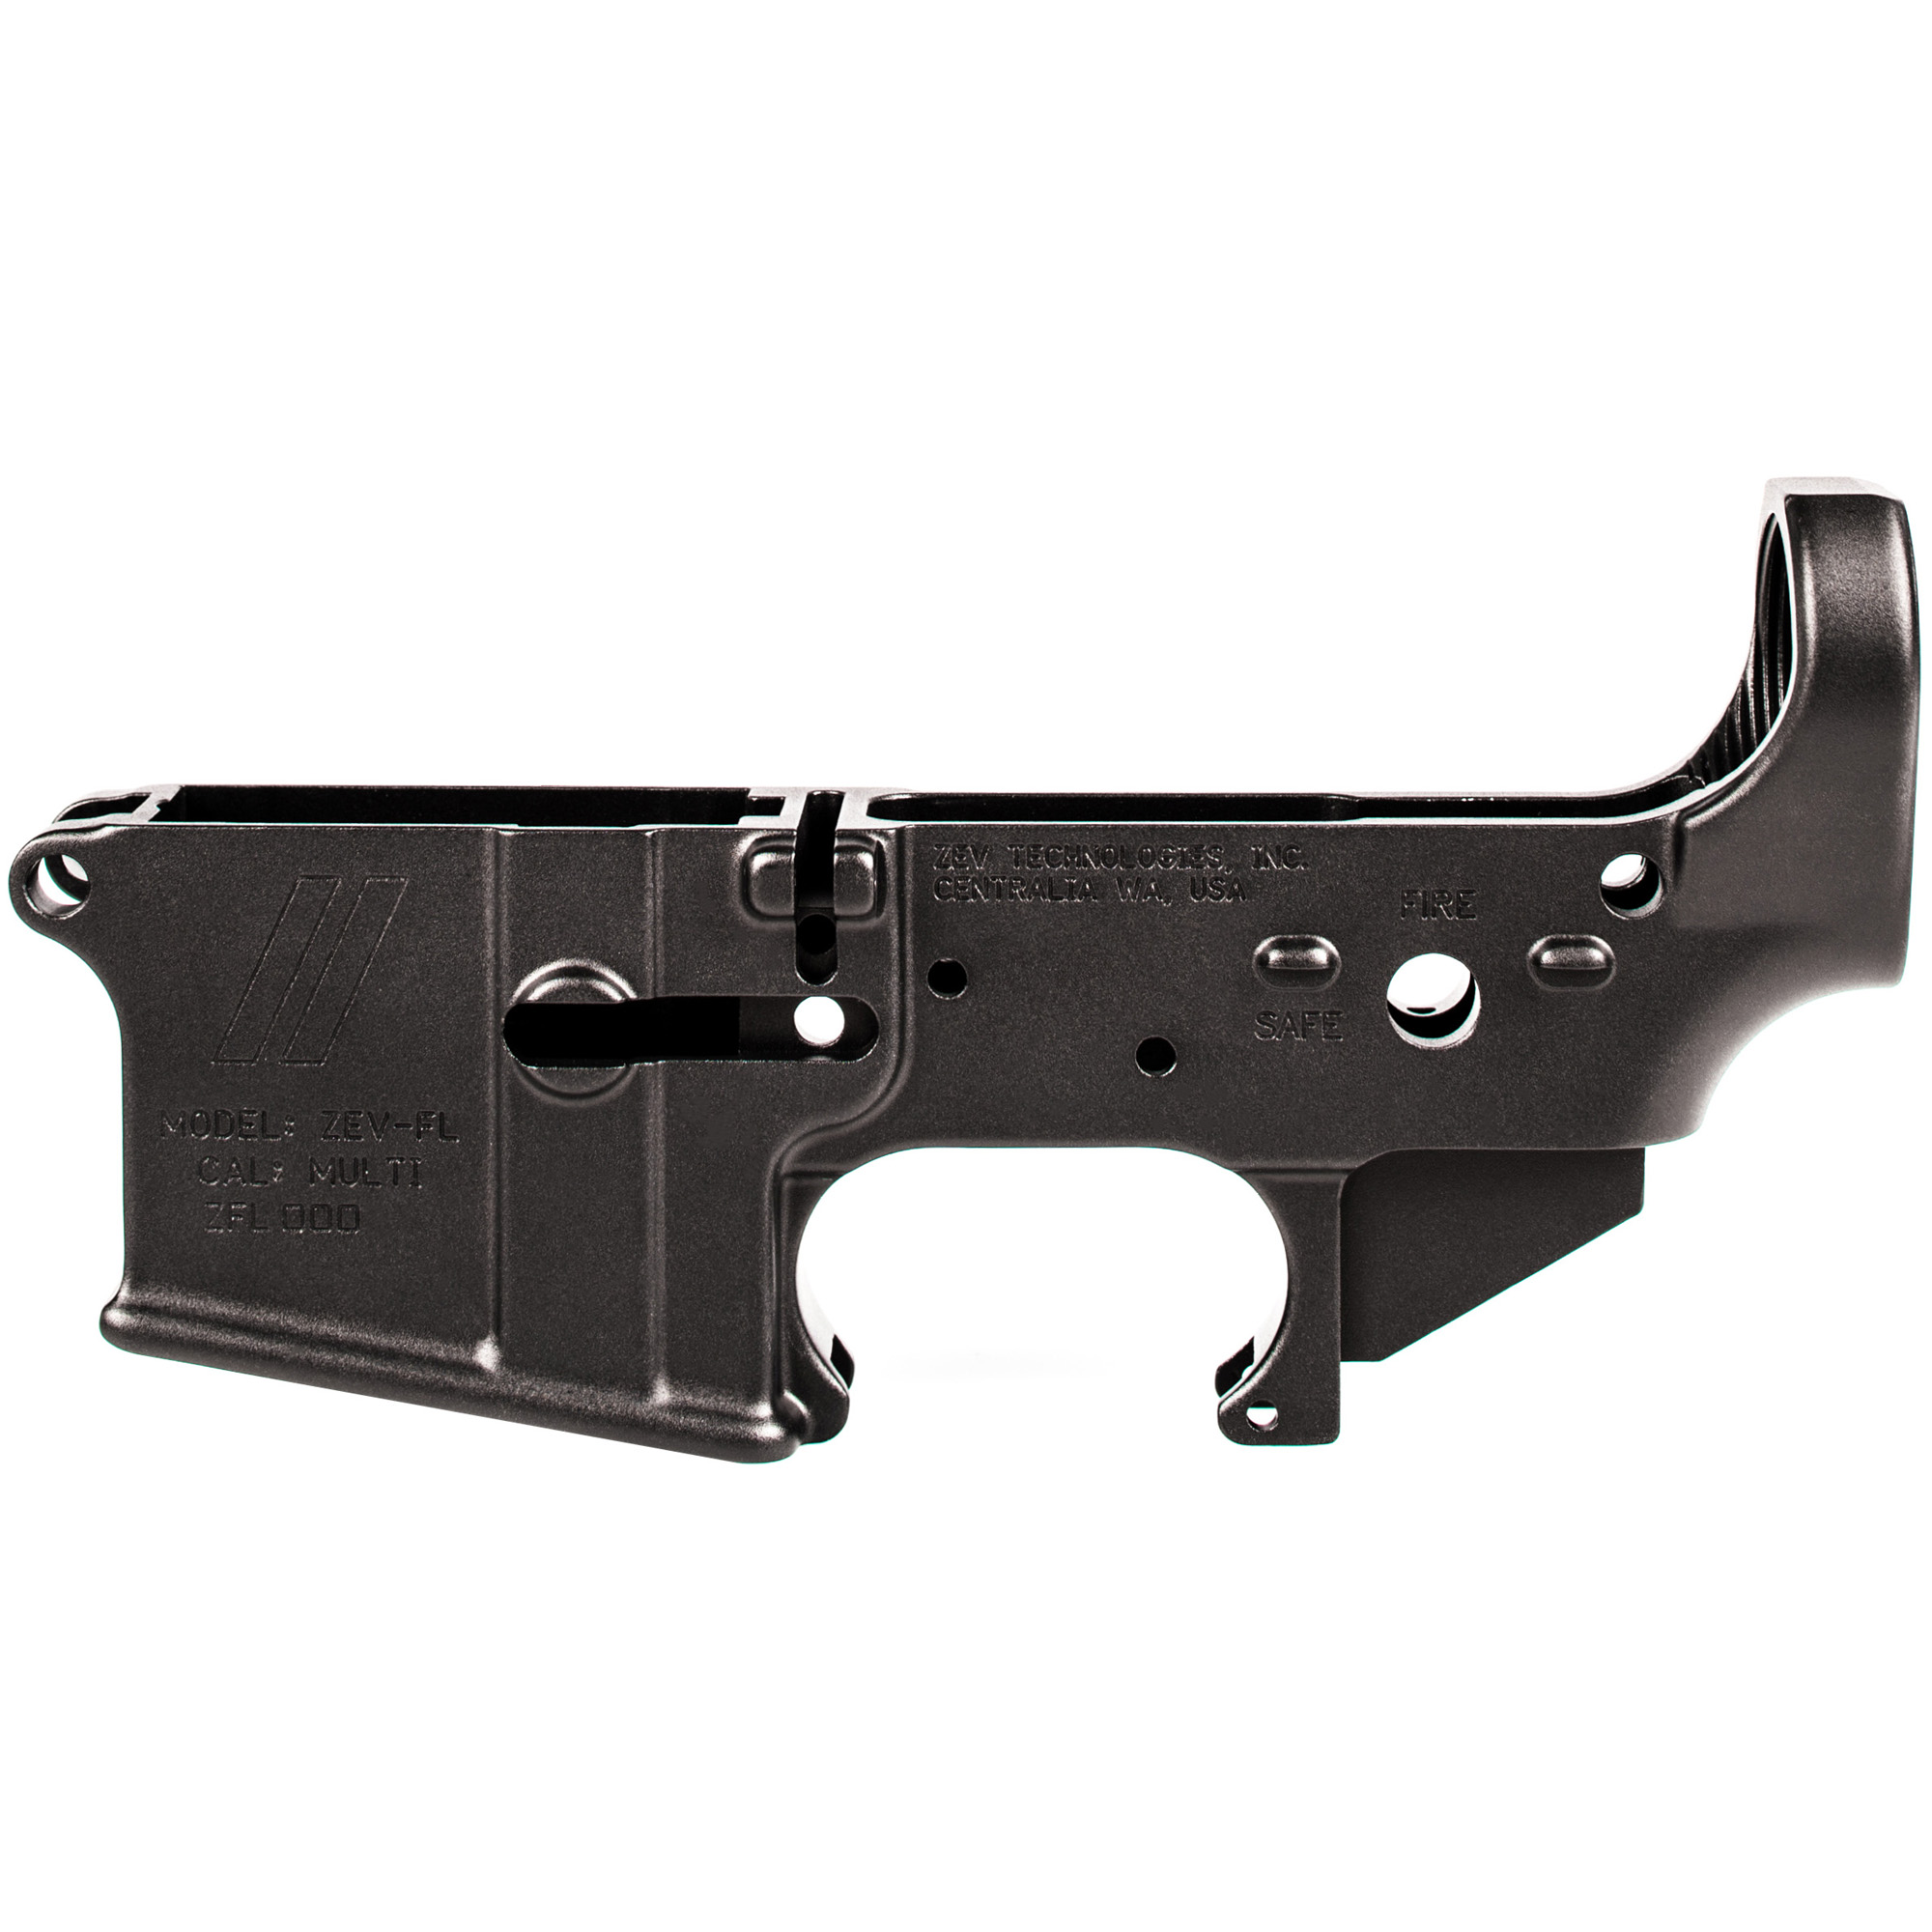 """The ZEV Technologies Forged AR-15 Lower Receiver comes stripped and ready for your next custom AR build. ZEV starts with high-quality 7075 T6 aluminum forgings and final machines them to better than mil-spec dimensions held to .001"""" tolerances"""" giving you maximum compatibility with mil-spec and aftermarket parts and accessories."""